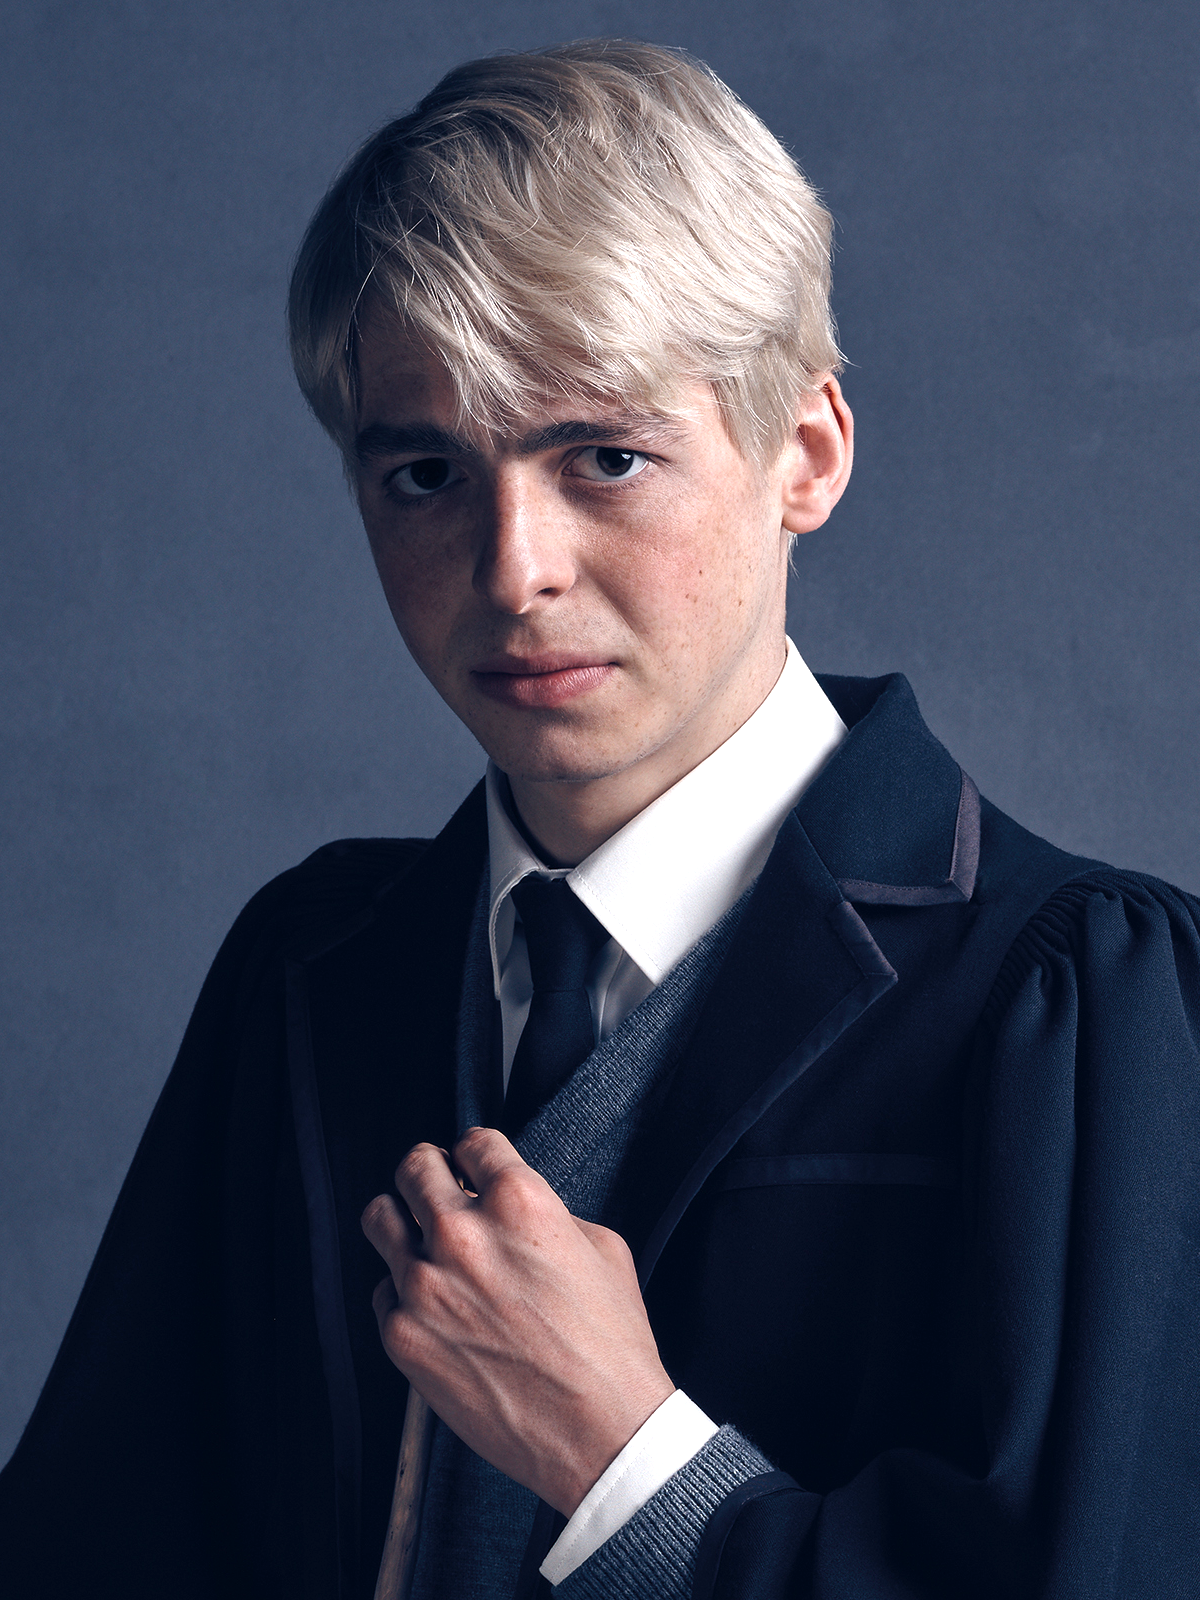 Scorpius Malfoy | Harry Potter Wiki | FANDOM powered by Wikia